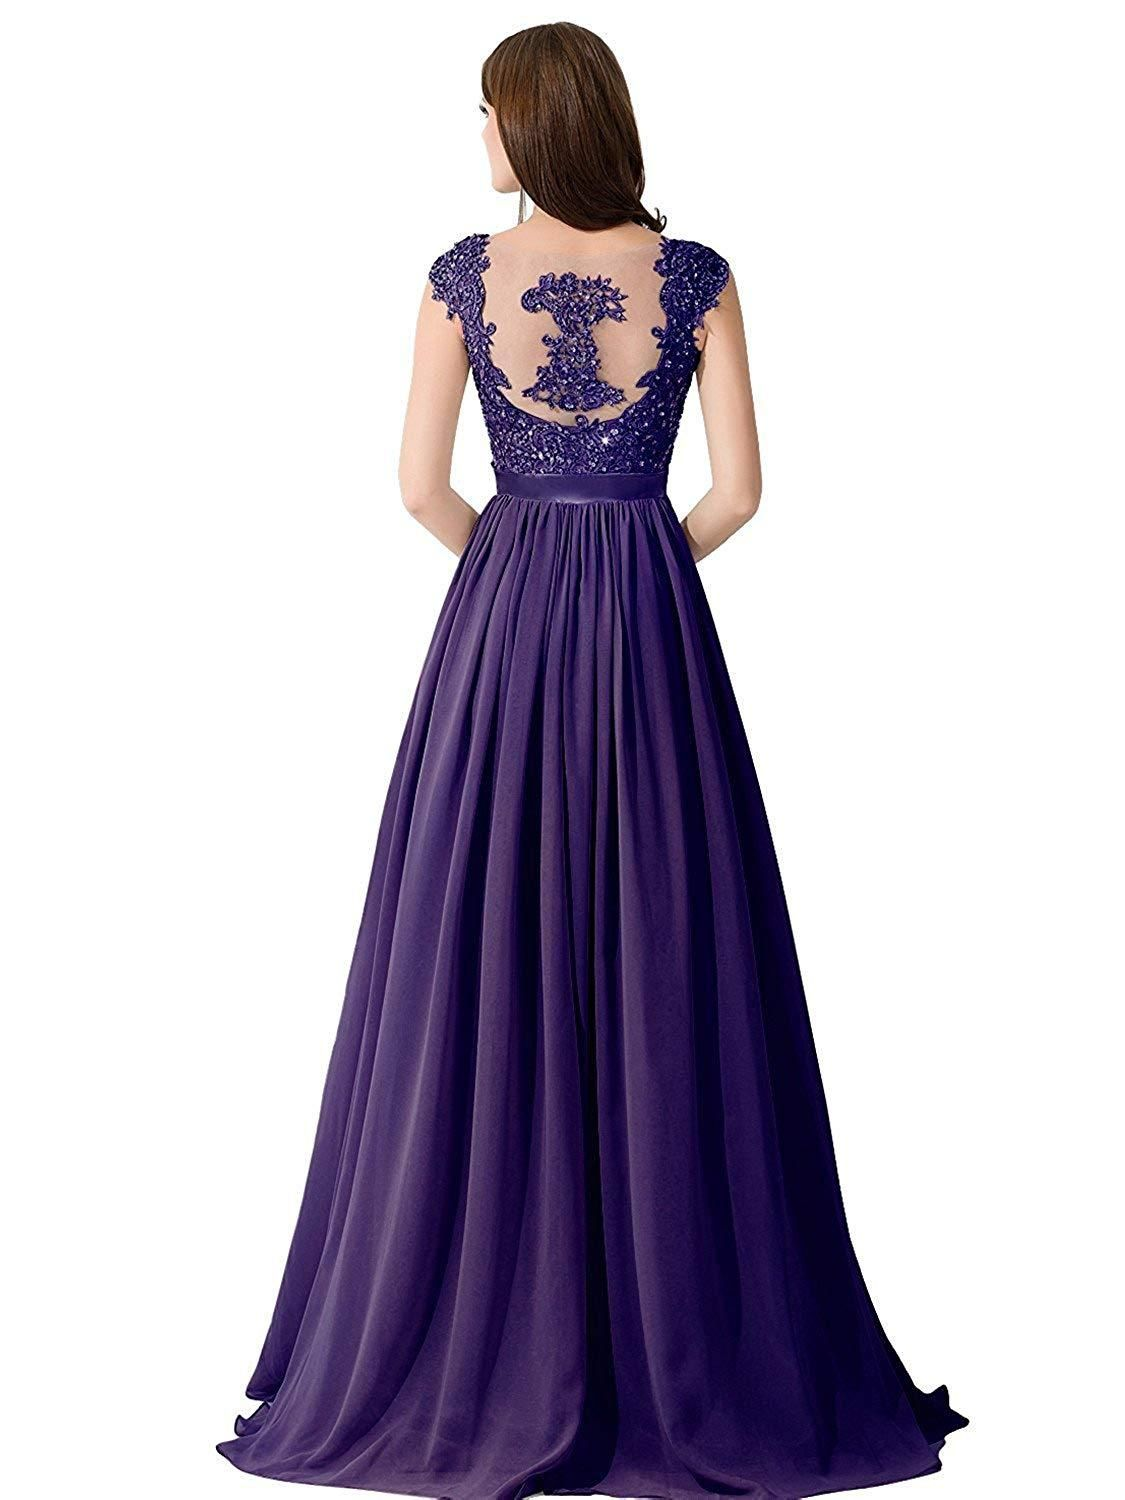 Babyonlinedress Babyonline Lace Backless Long Formal Evening Prom Dresses for Wedding Party #backlesscocktaildress